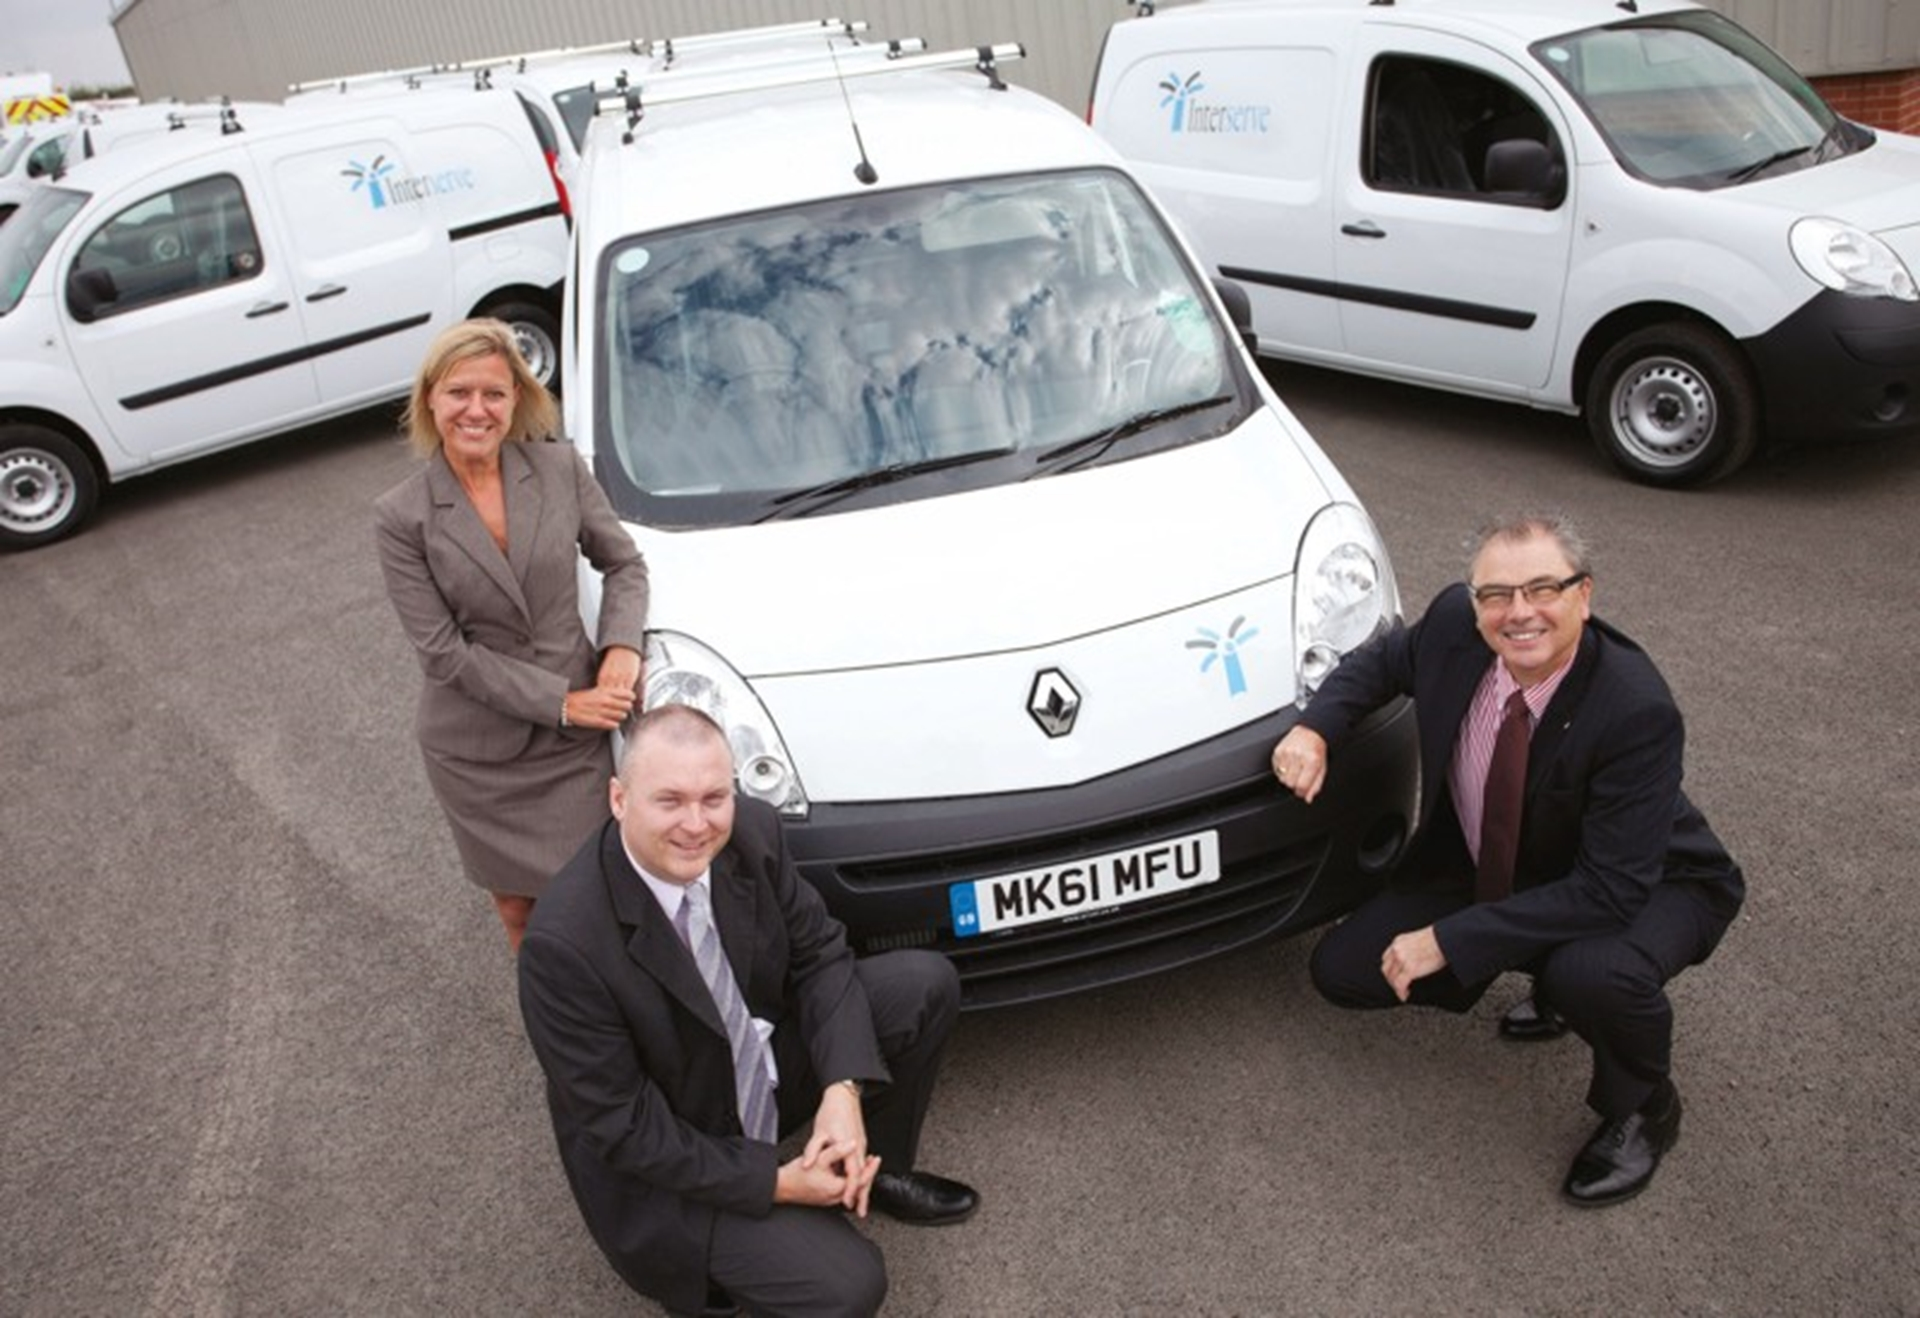 Renault serves up new fleet for Interserve